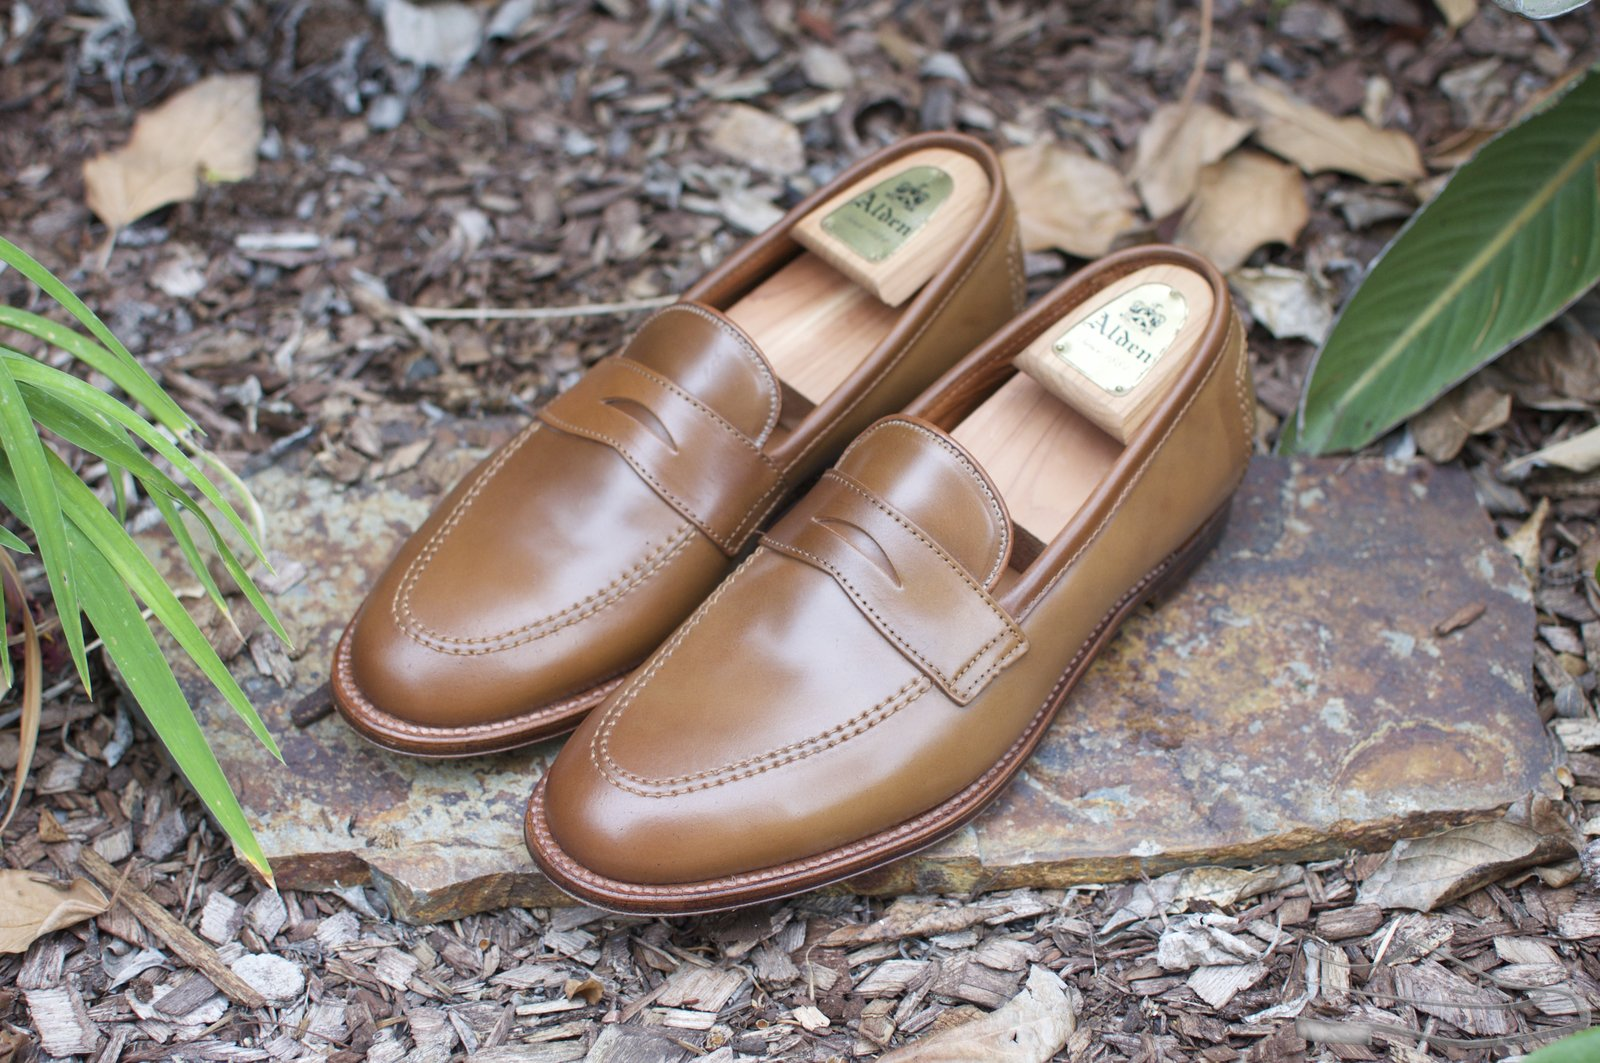 Alden Whiskey Shell Cordovan Penny Loafers - 2021-05-15 - 1.jpg